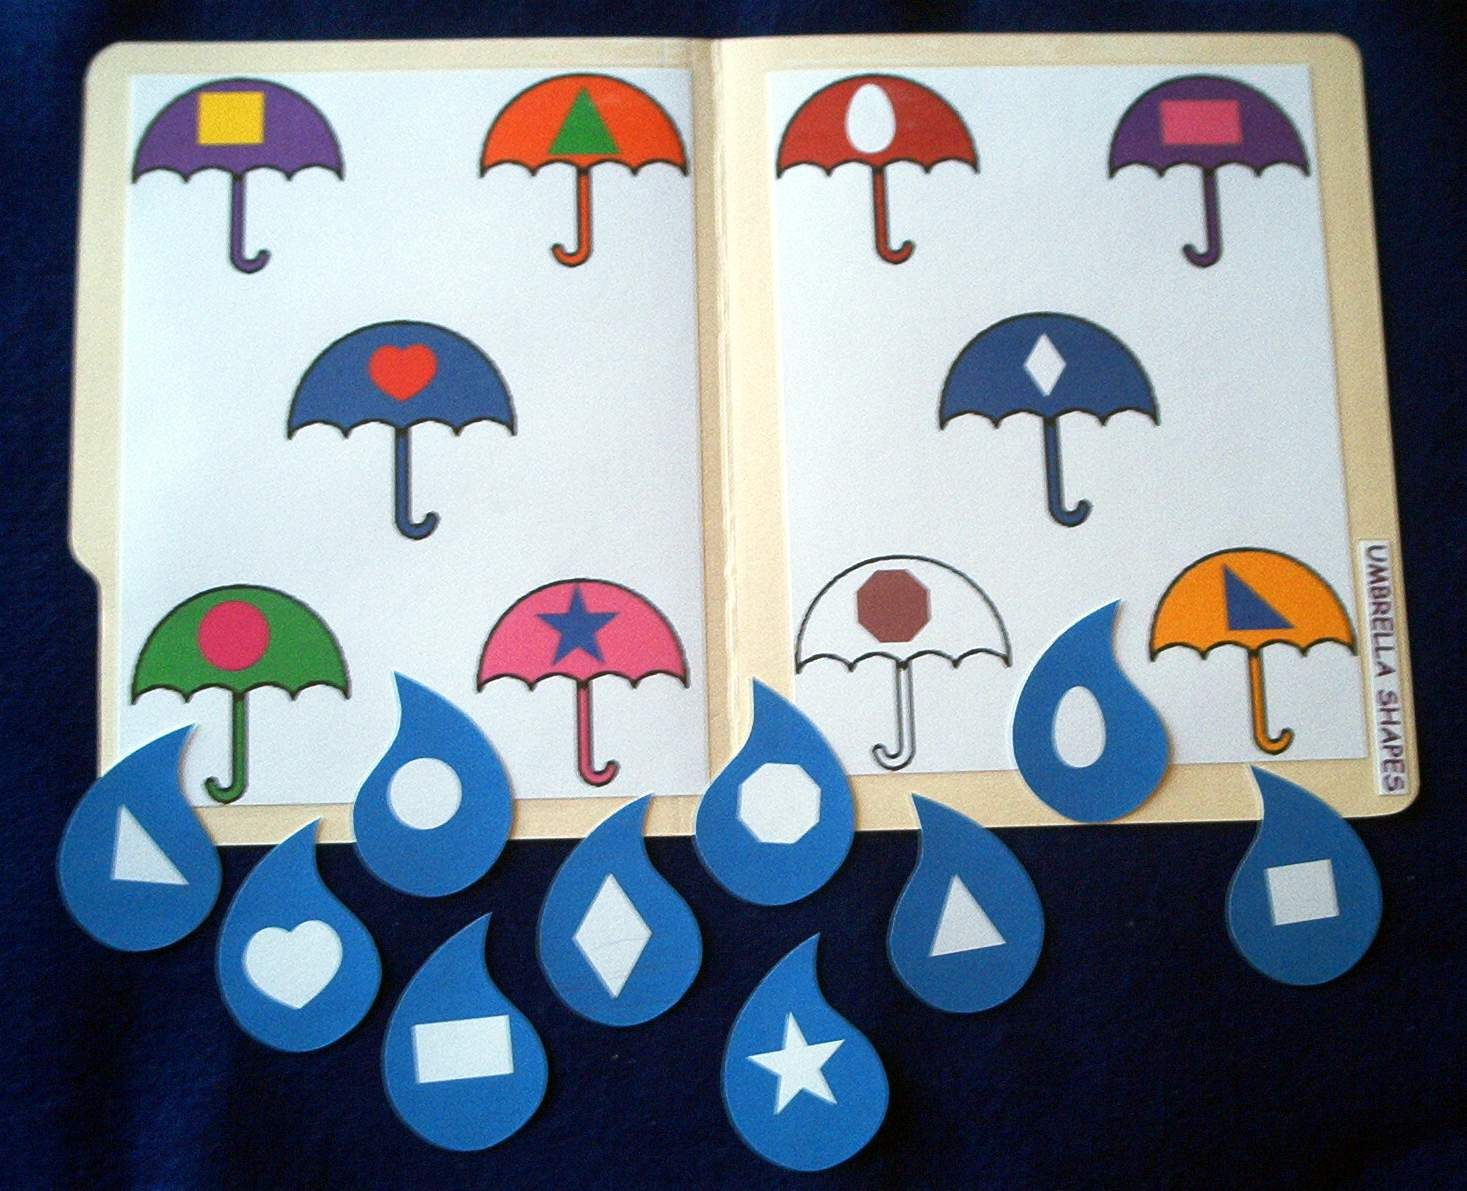 Printable color matching games for preschoolers - Umbrella Raindrops Shape Matching Can Create For Matching Uppercase To Lowercase And Weather Activities Preschoolpreschool